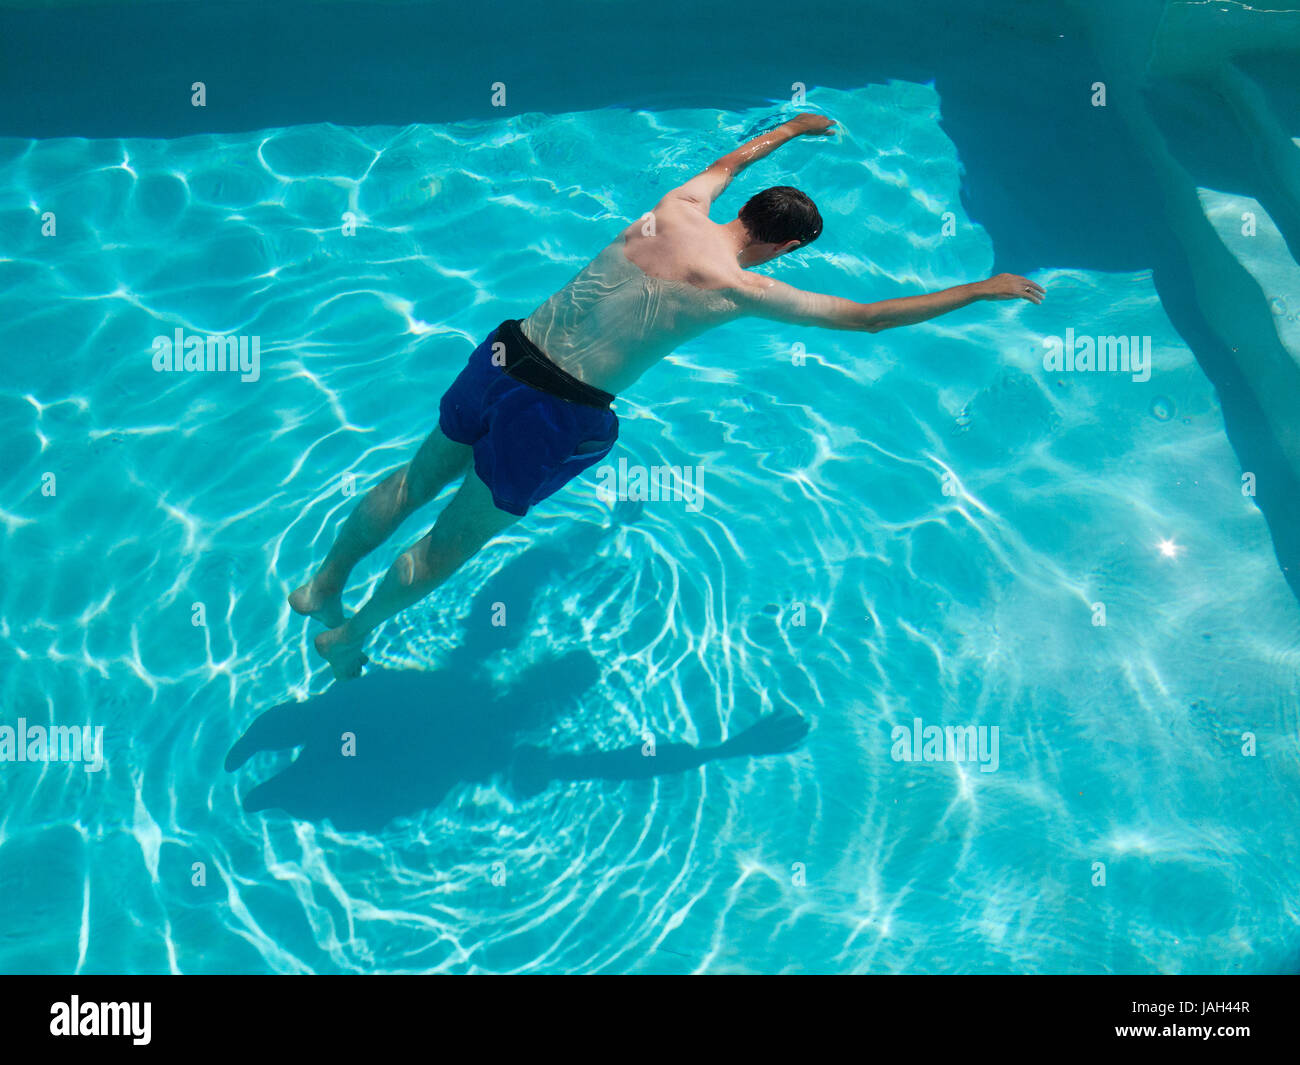 Motionless body of swimmer (drowned?), floating in swimming